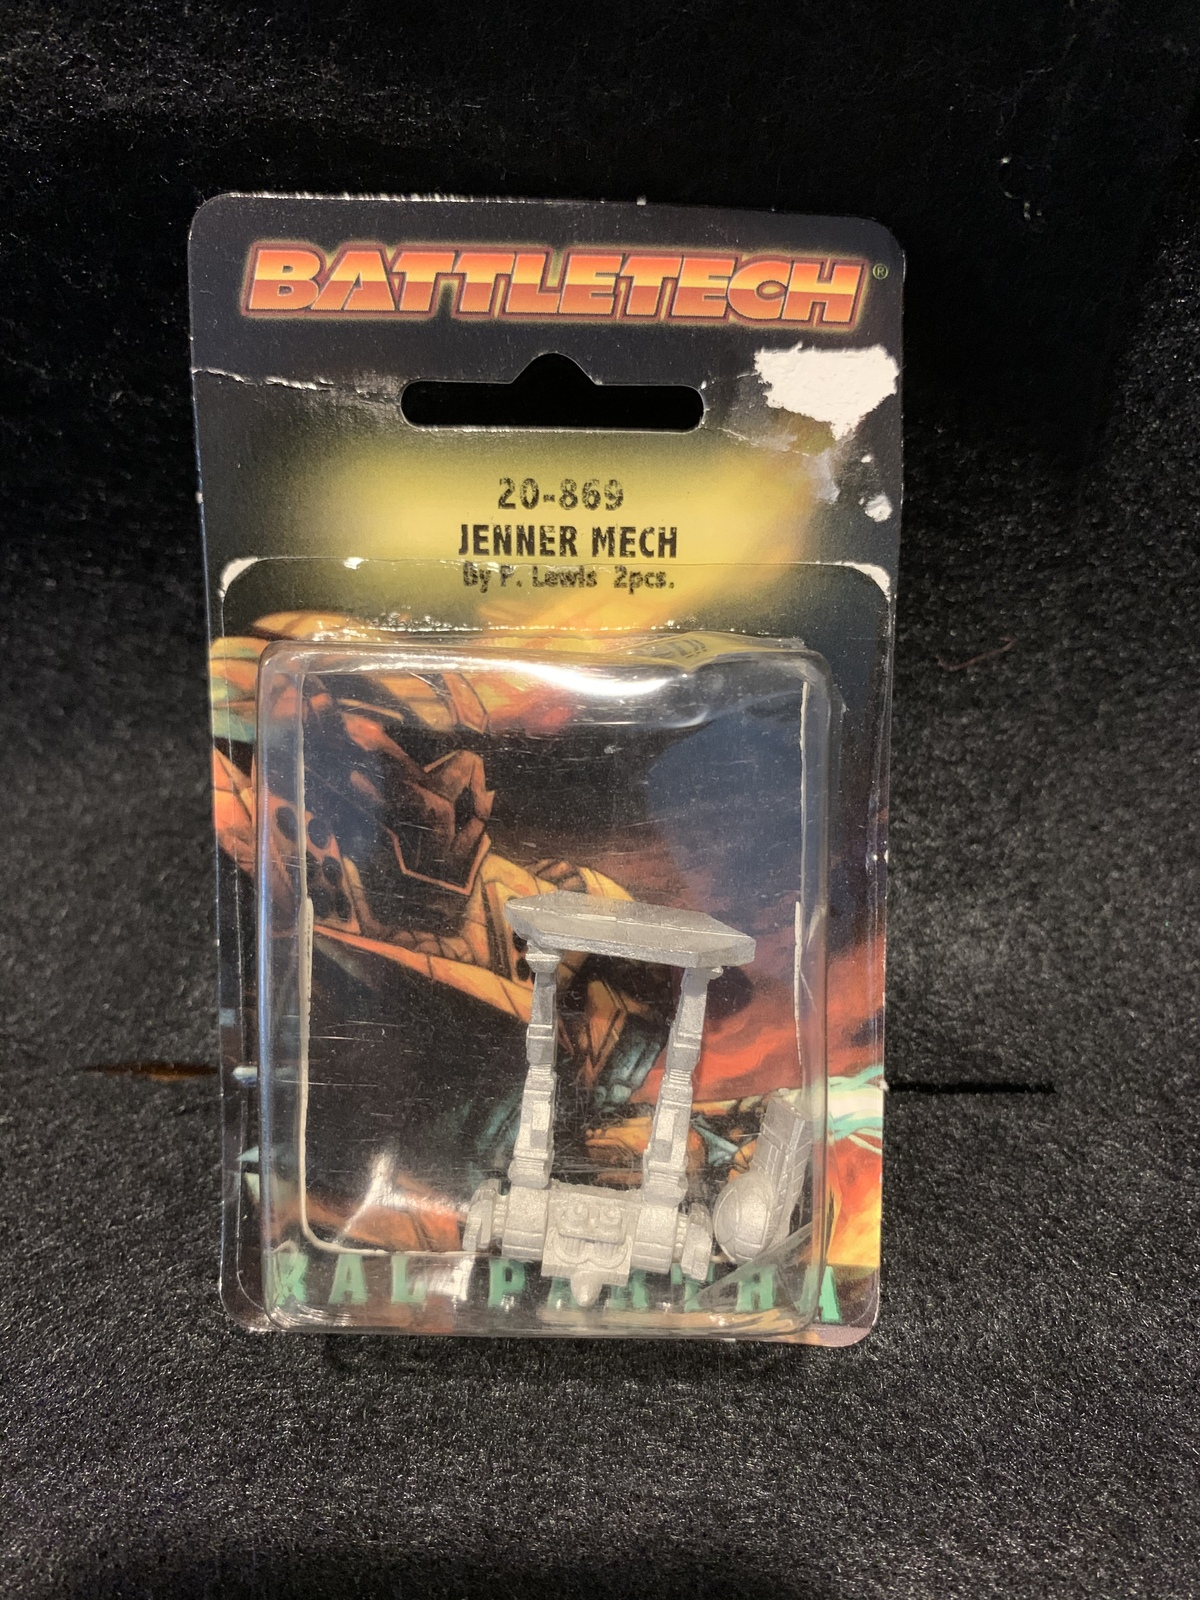 BattleTech Pewter Miniatures - Jenner Mech (2 pieces) - By Ral Partha  - $22.00